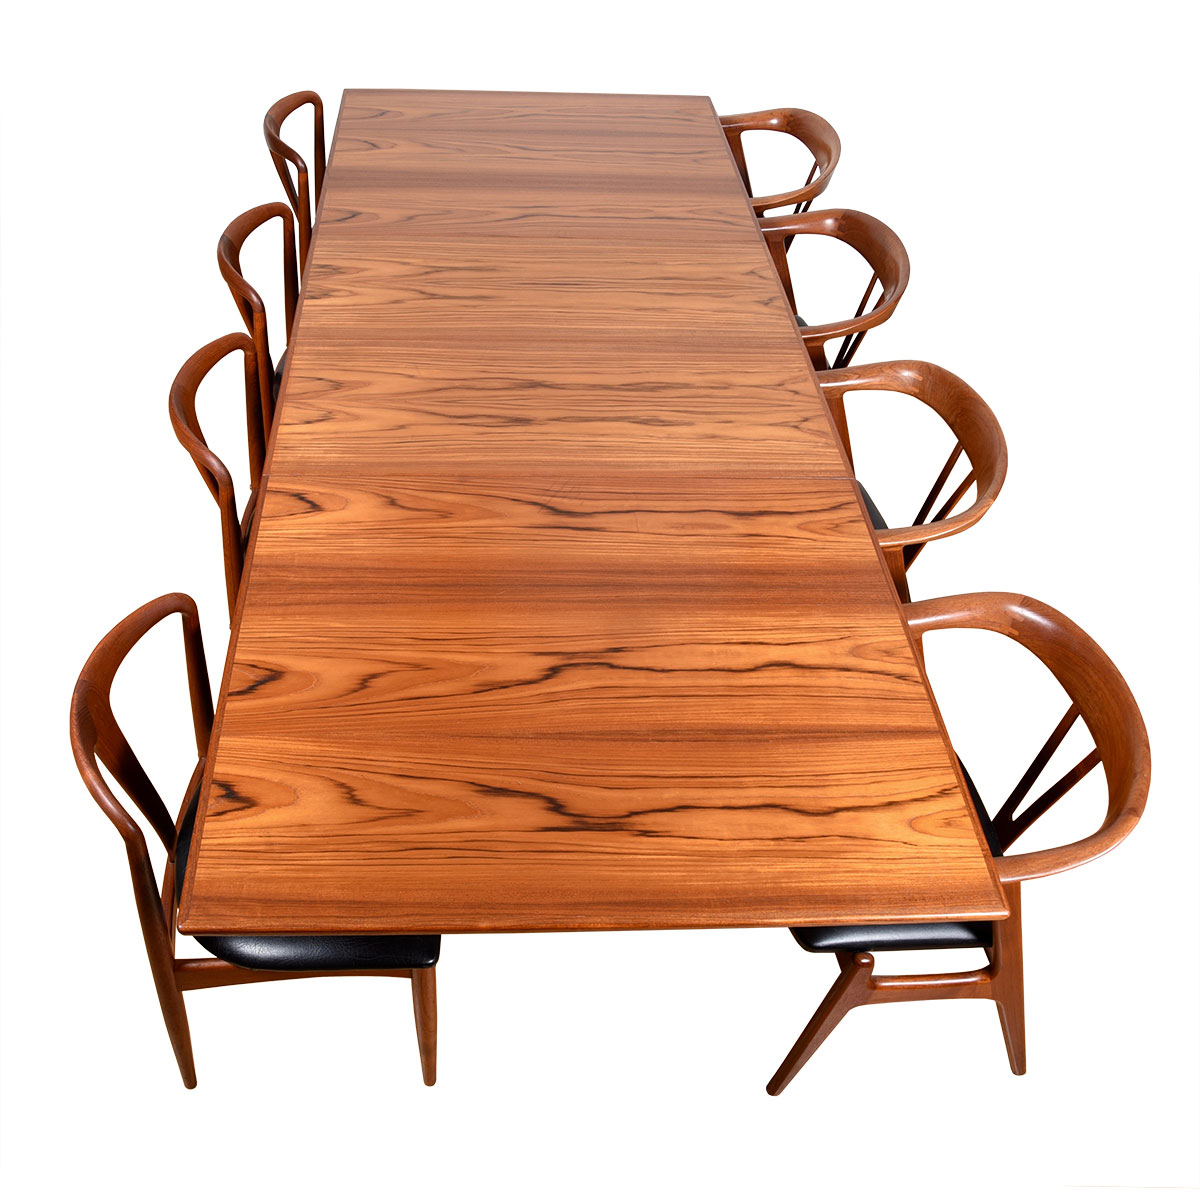 Folke Ohlsson Swedish Teak Expanding Dining Table by Dux, in Preserved Condition + Table Pads!